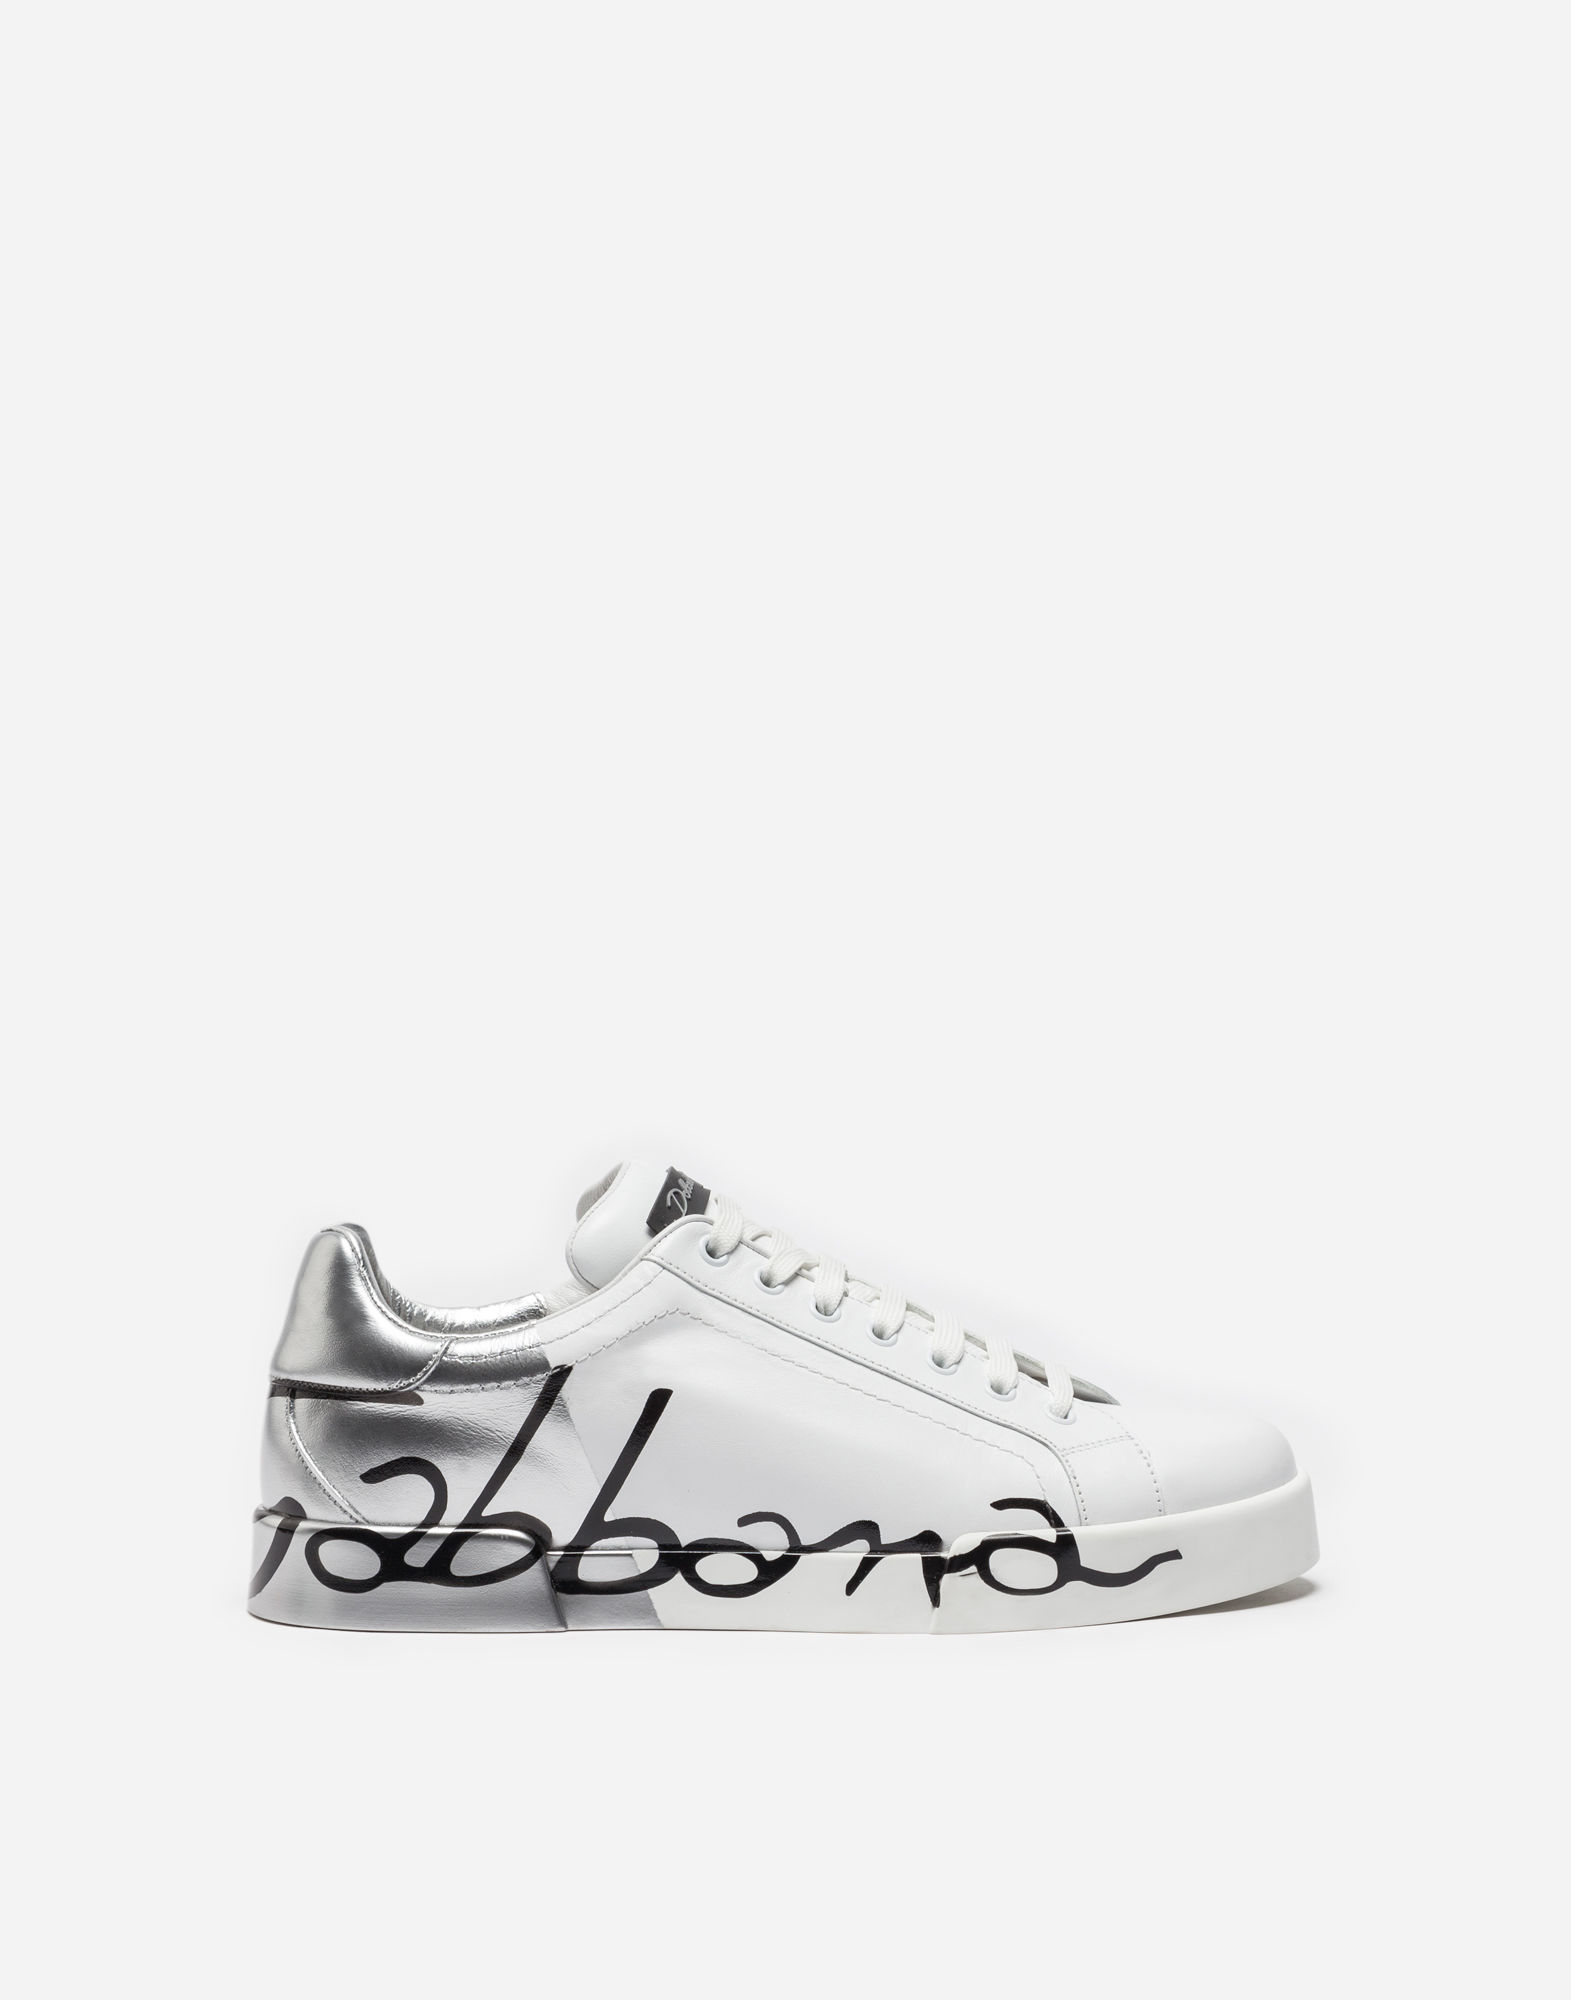 Dolce & Gabbana Portofno sneakers - White 2018 Newest Cheap Online Low Cost Online Cheap Sale Release Dates Clearance Huge Surprise VmskNo5E5